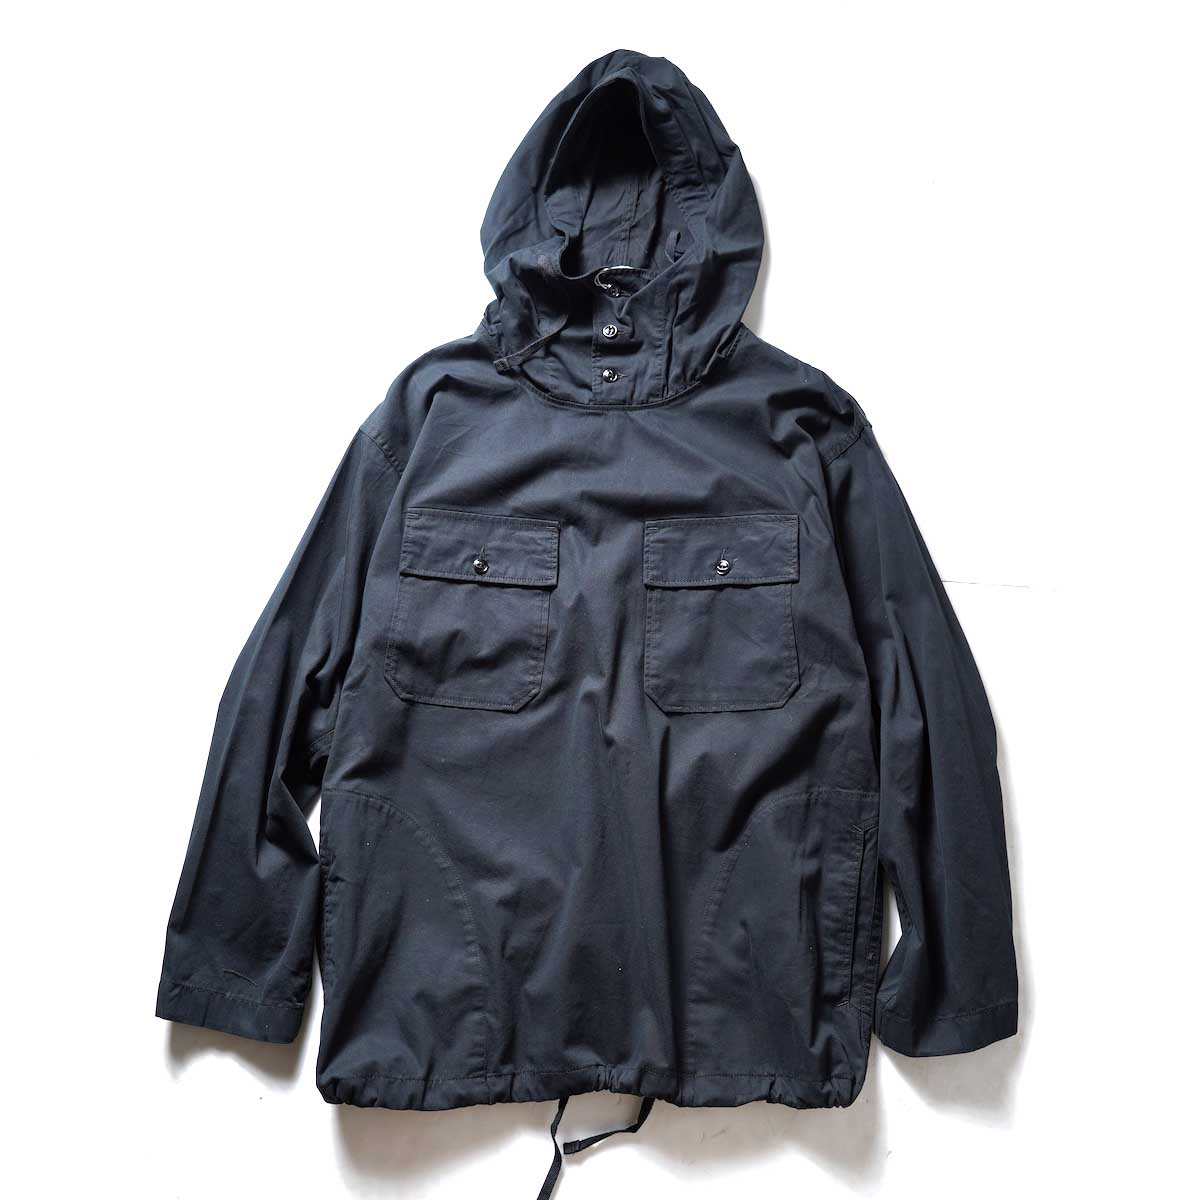 Engineered Garments / CAGOULE SHIRT - COTTON MICRO SANDED TWILL (Bladk)